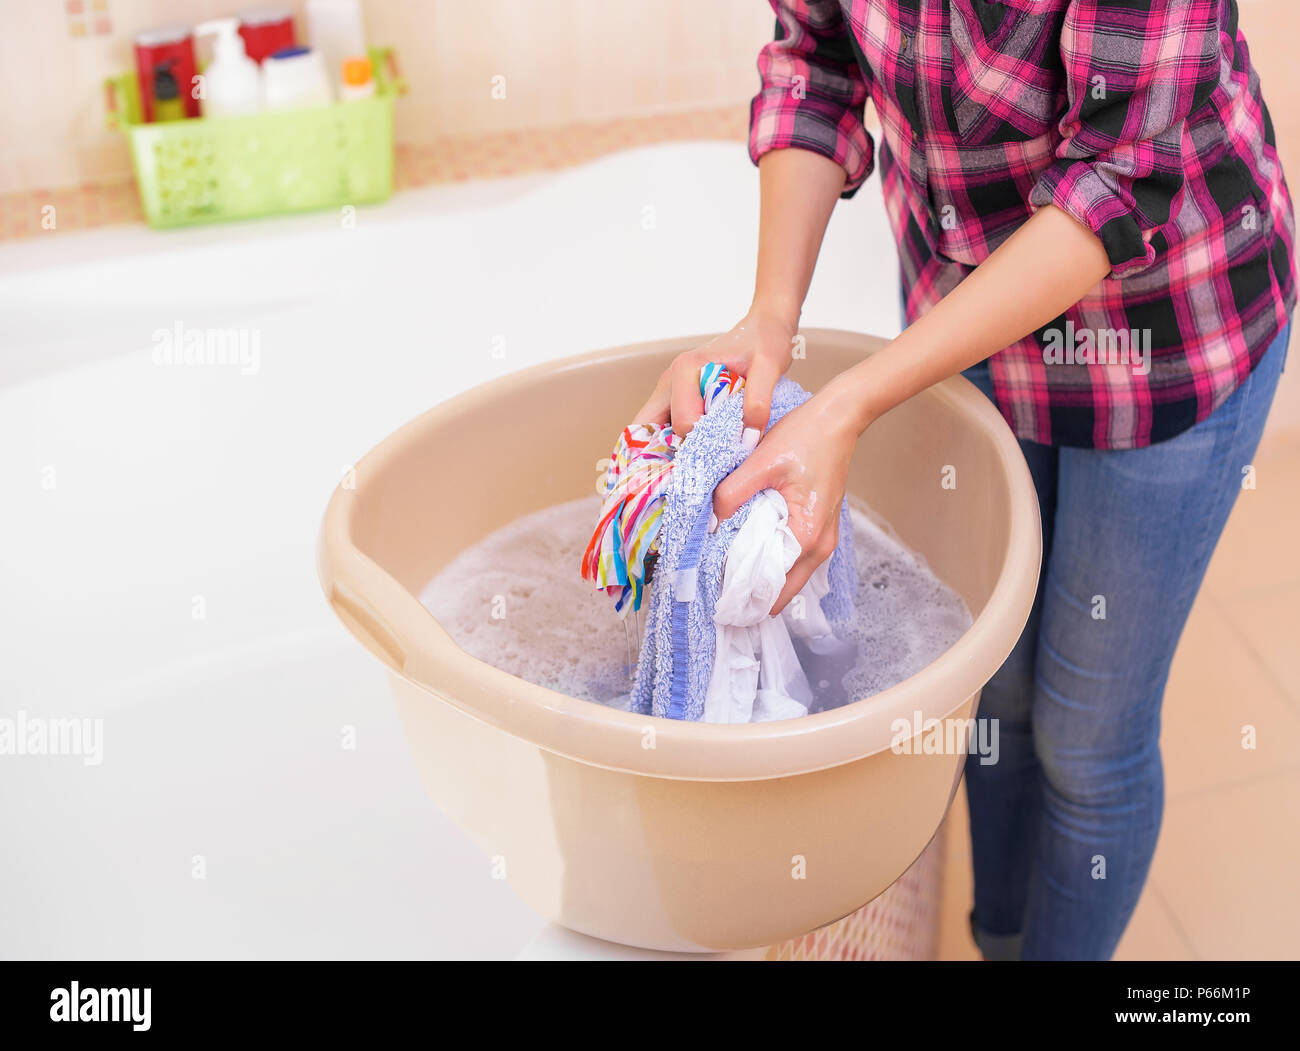 Women's hands wash clothes in the basin Stock Photo - Alamy